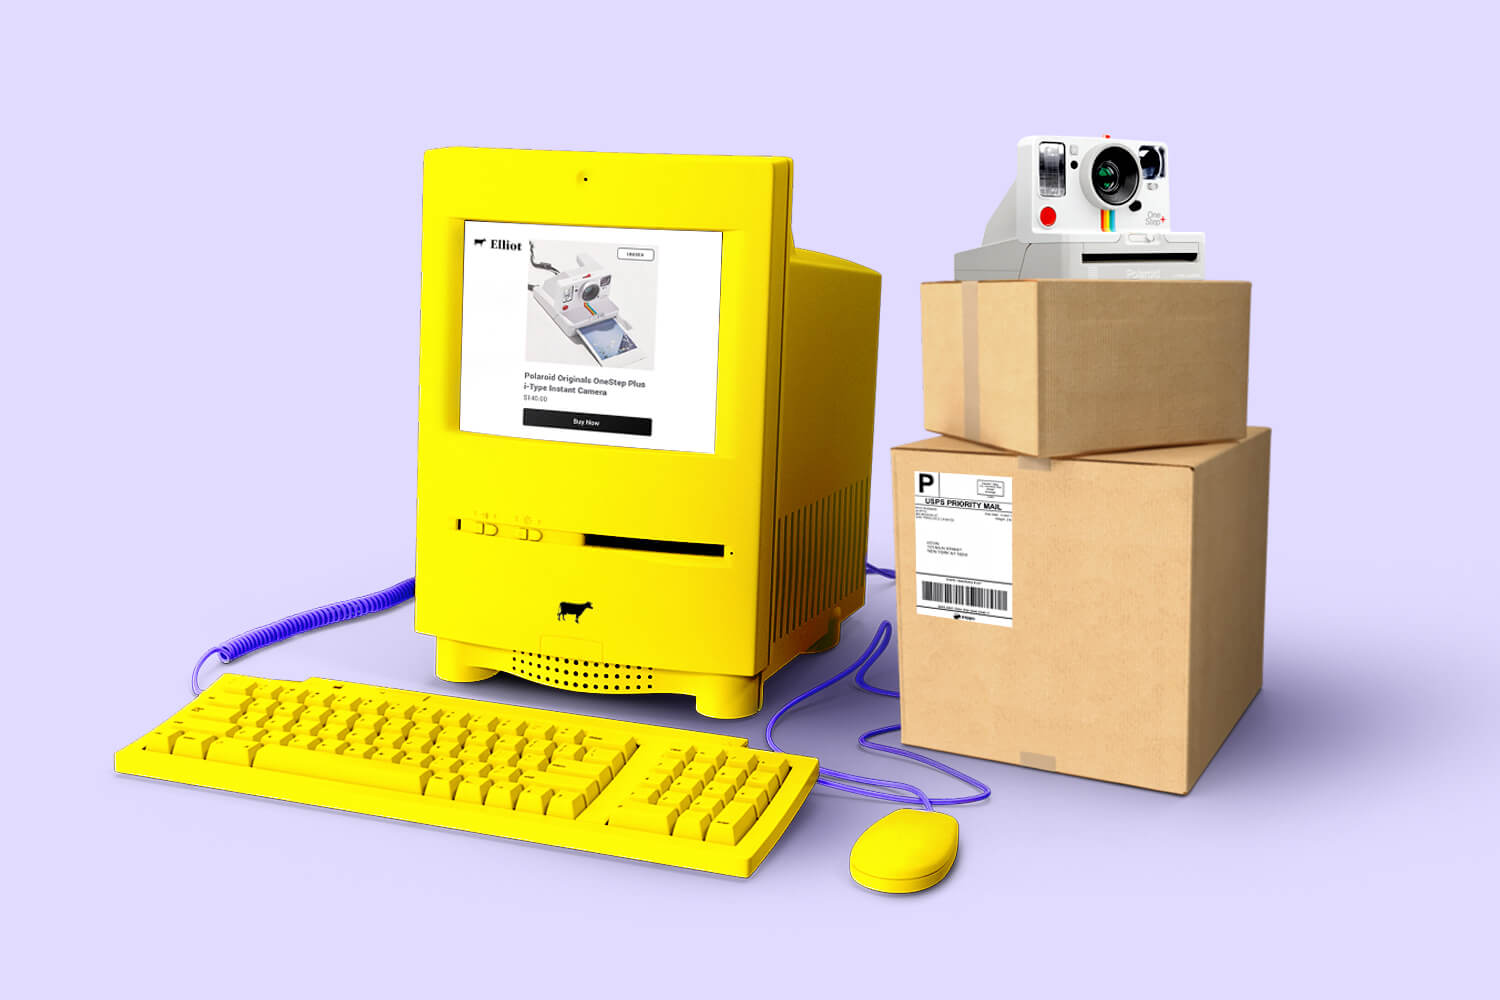 A bright yellow computer handling Elliot shipping